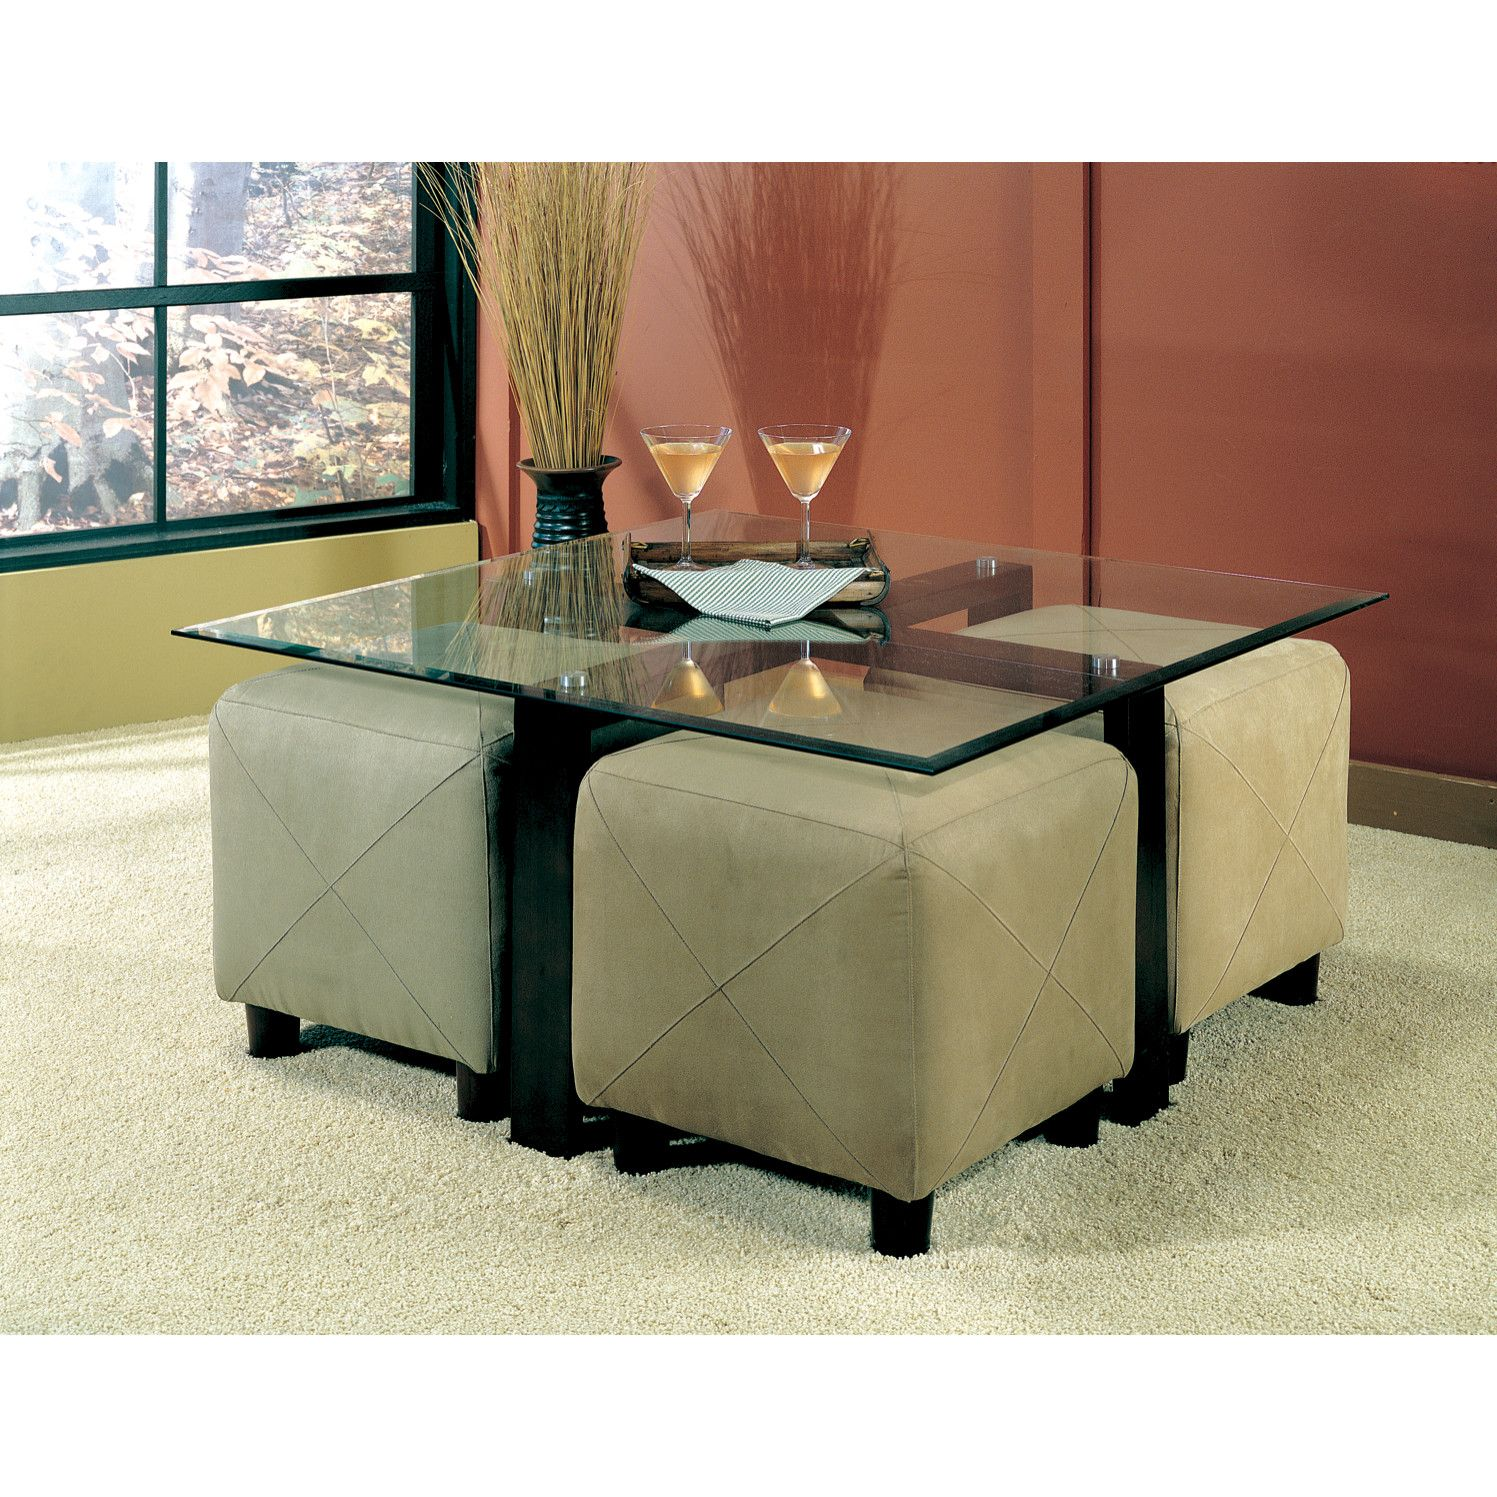 Wildon Home Hines Coffee Table With Stools Underneath Black Ottoman Diy